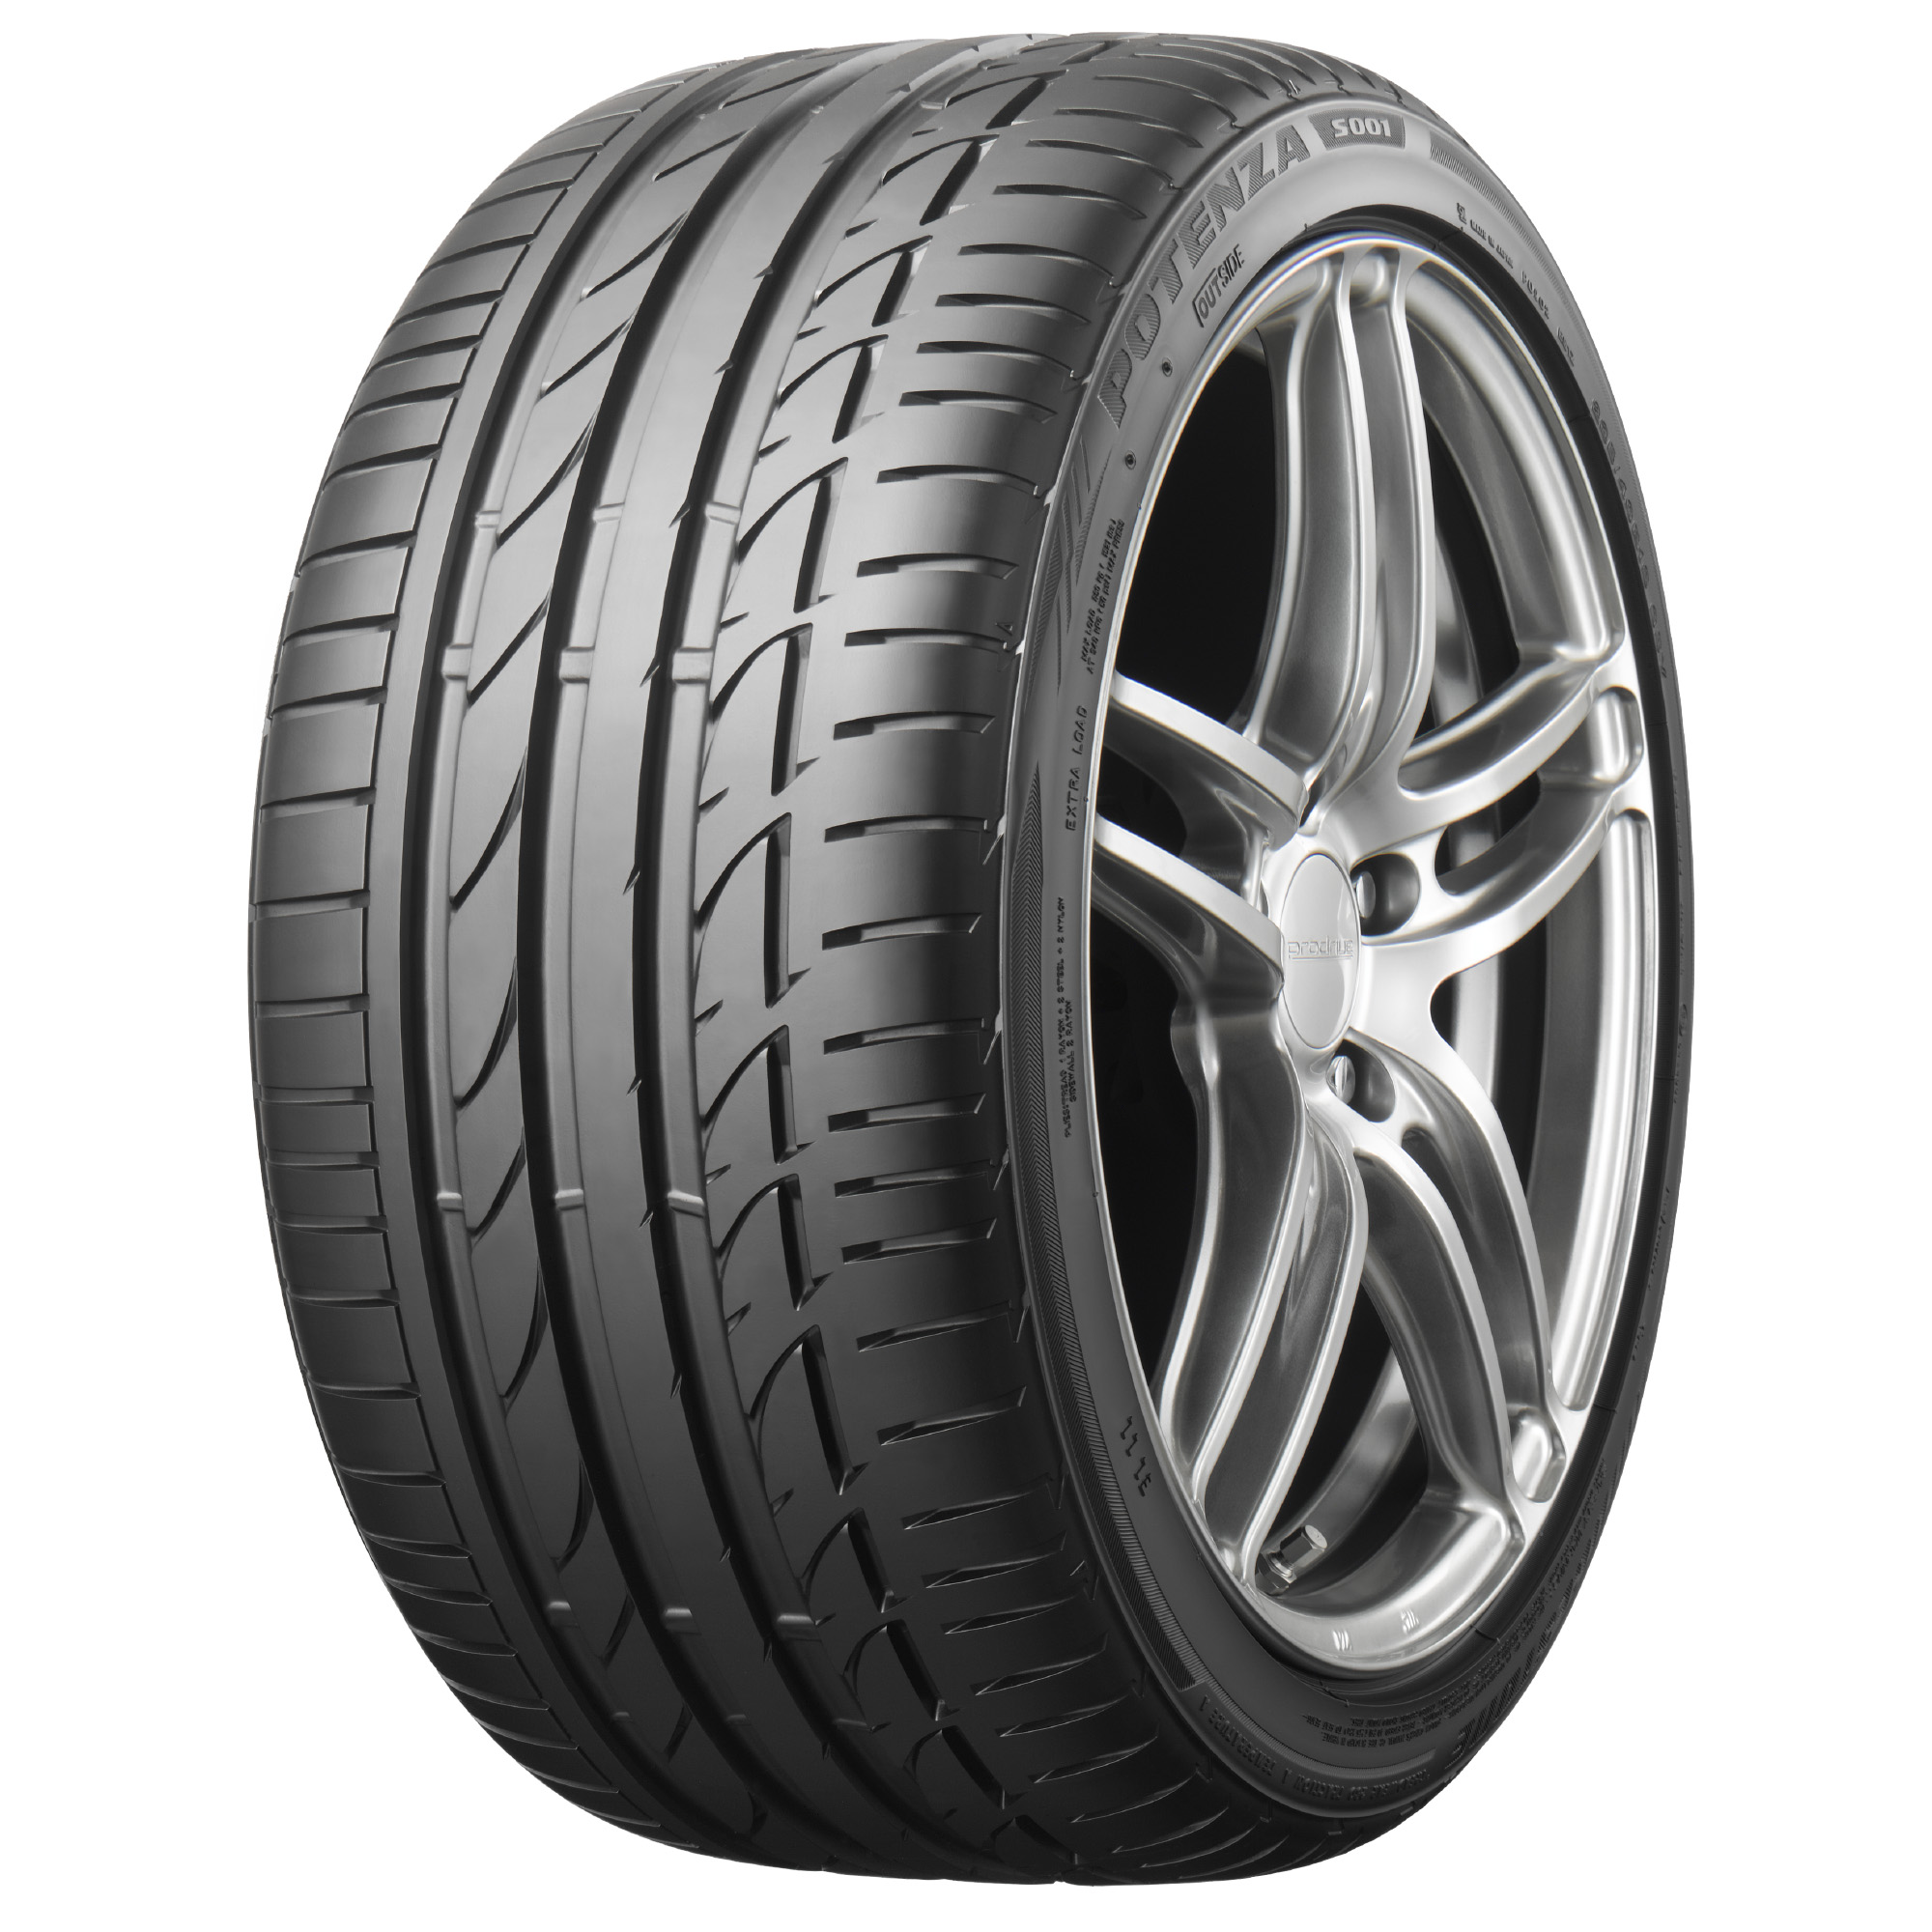 Bridgestone Run-Flat Technology